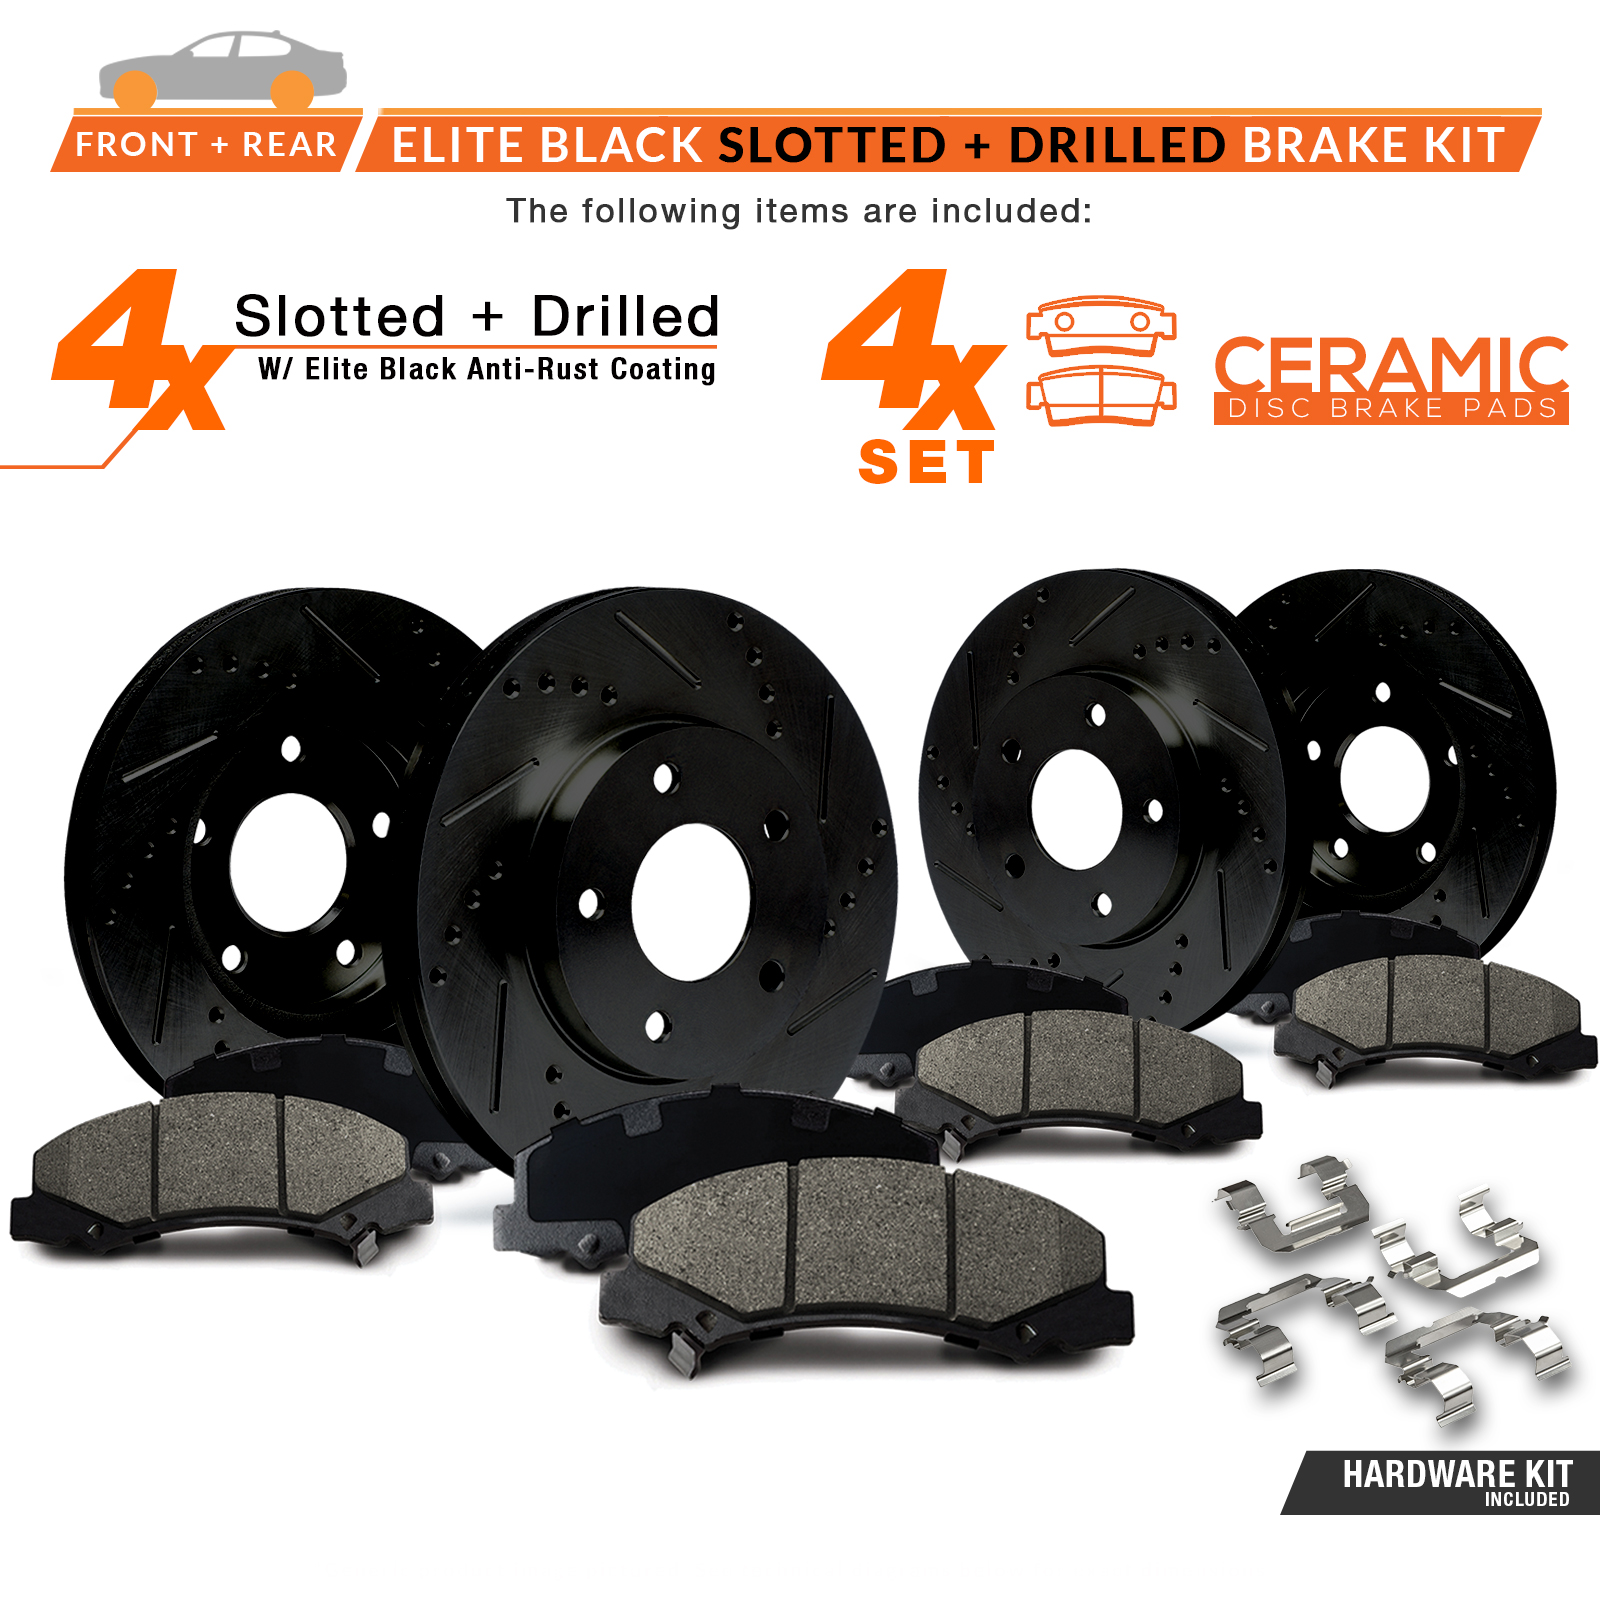 FRONT-REAR-BLACK-Slotted-Drilled-Rotors-with-Ceramic-Pads-amp-Hardware-Kit thumbnail 2